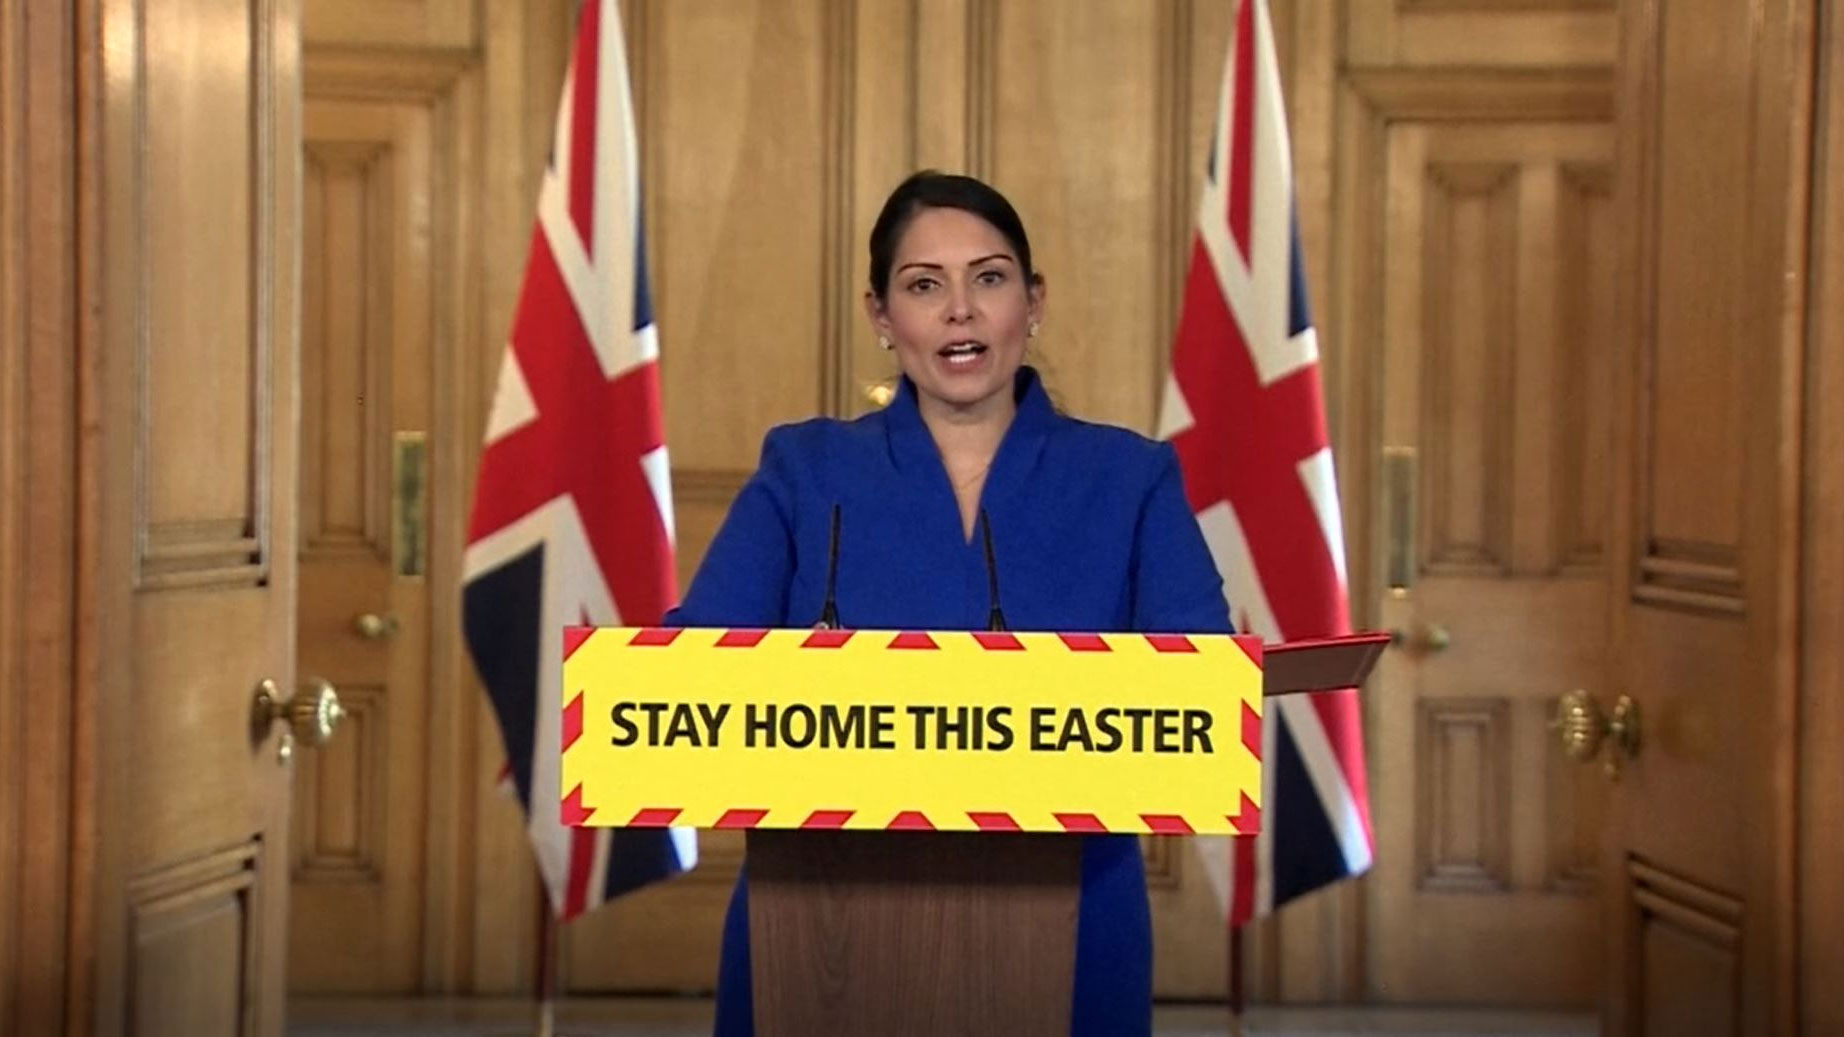 UK Home Secretary Priti Patel speaks from Downing Street in London on April 11.